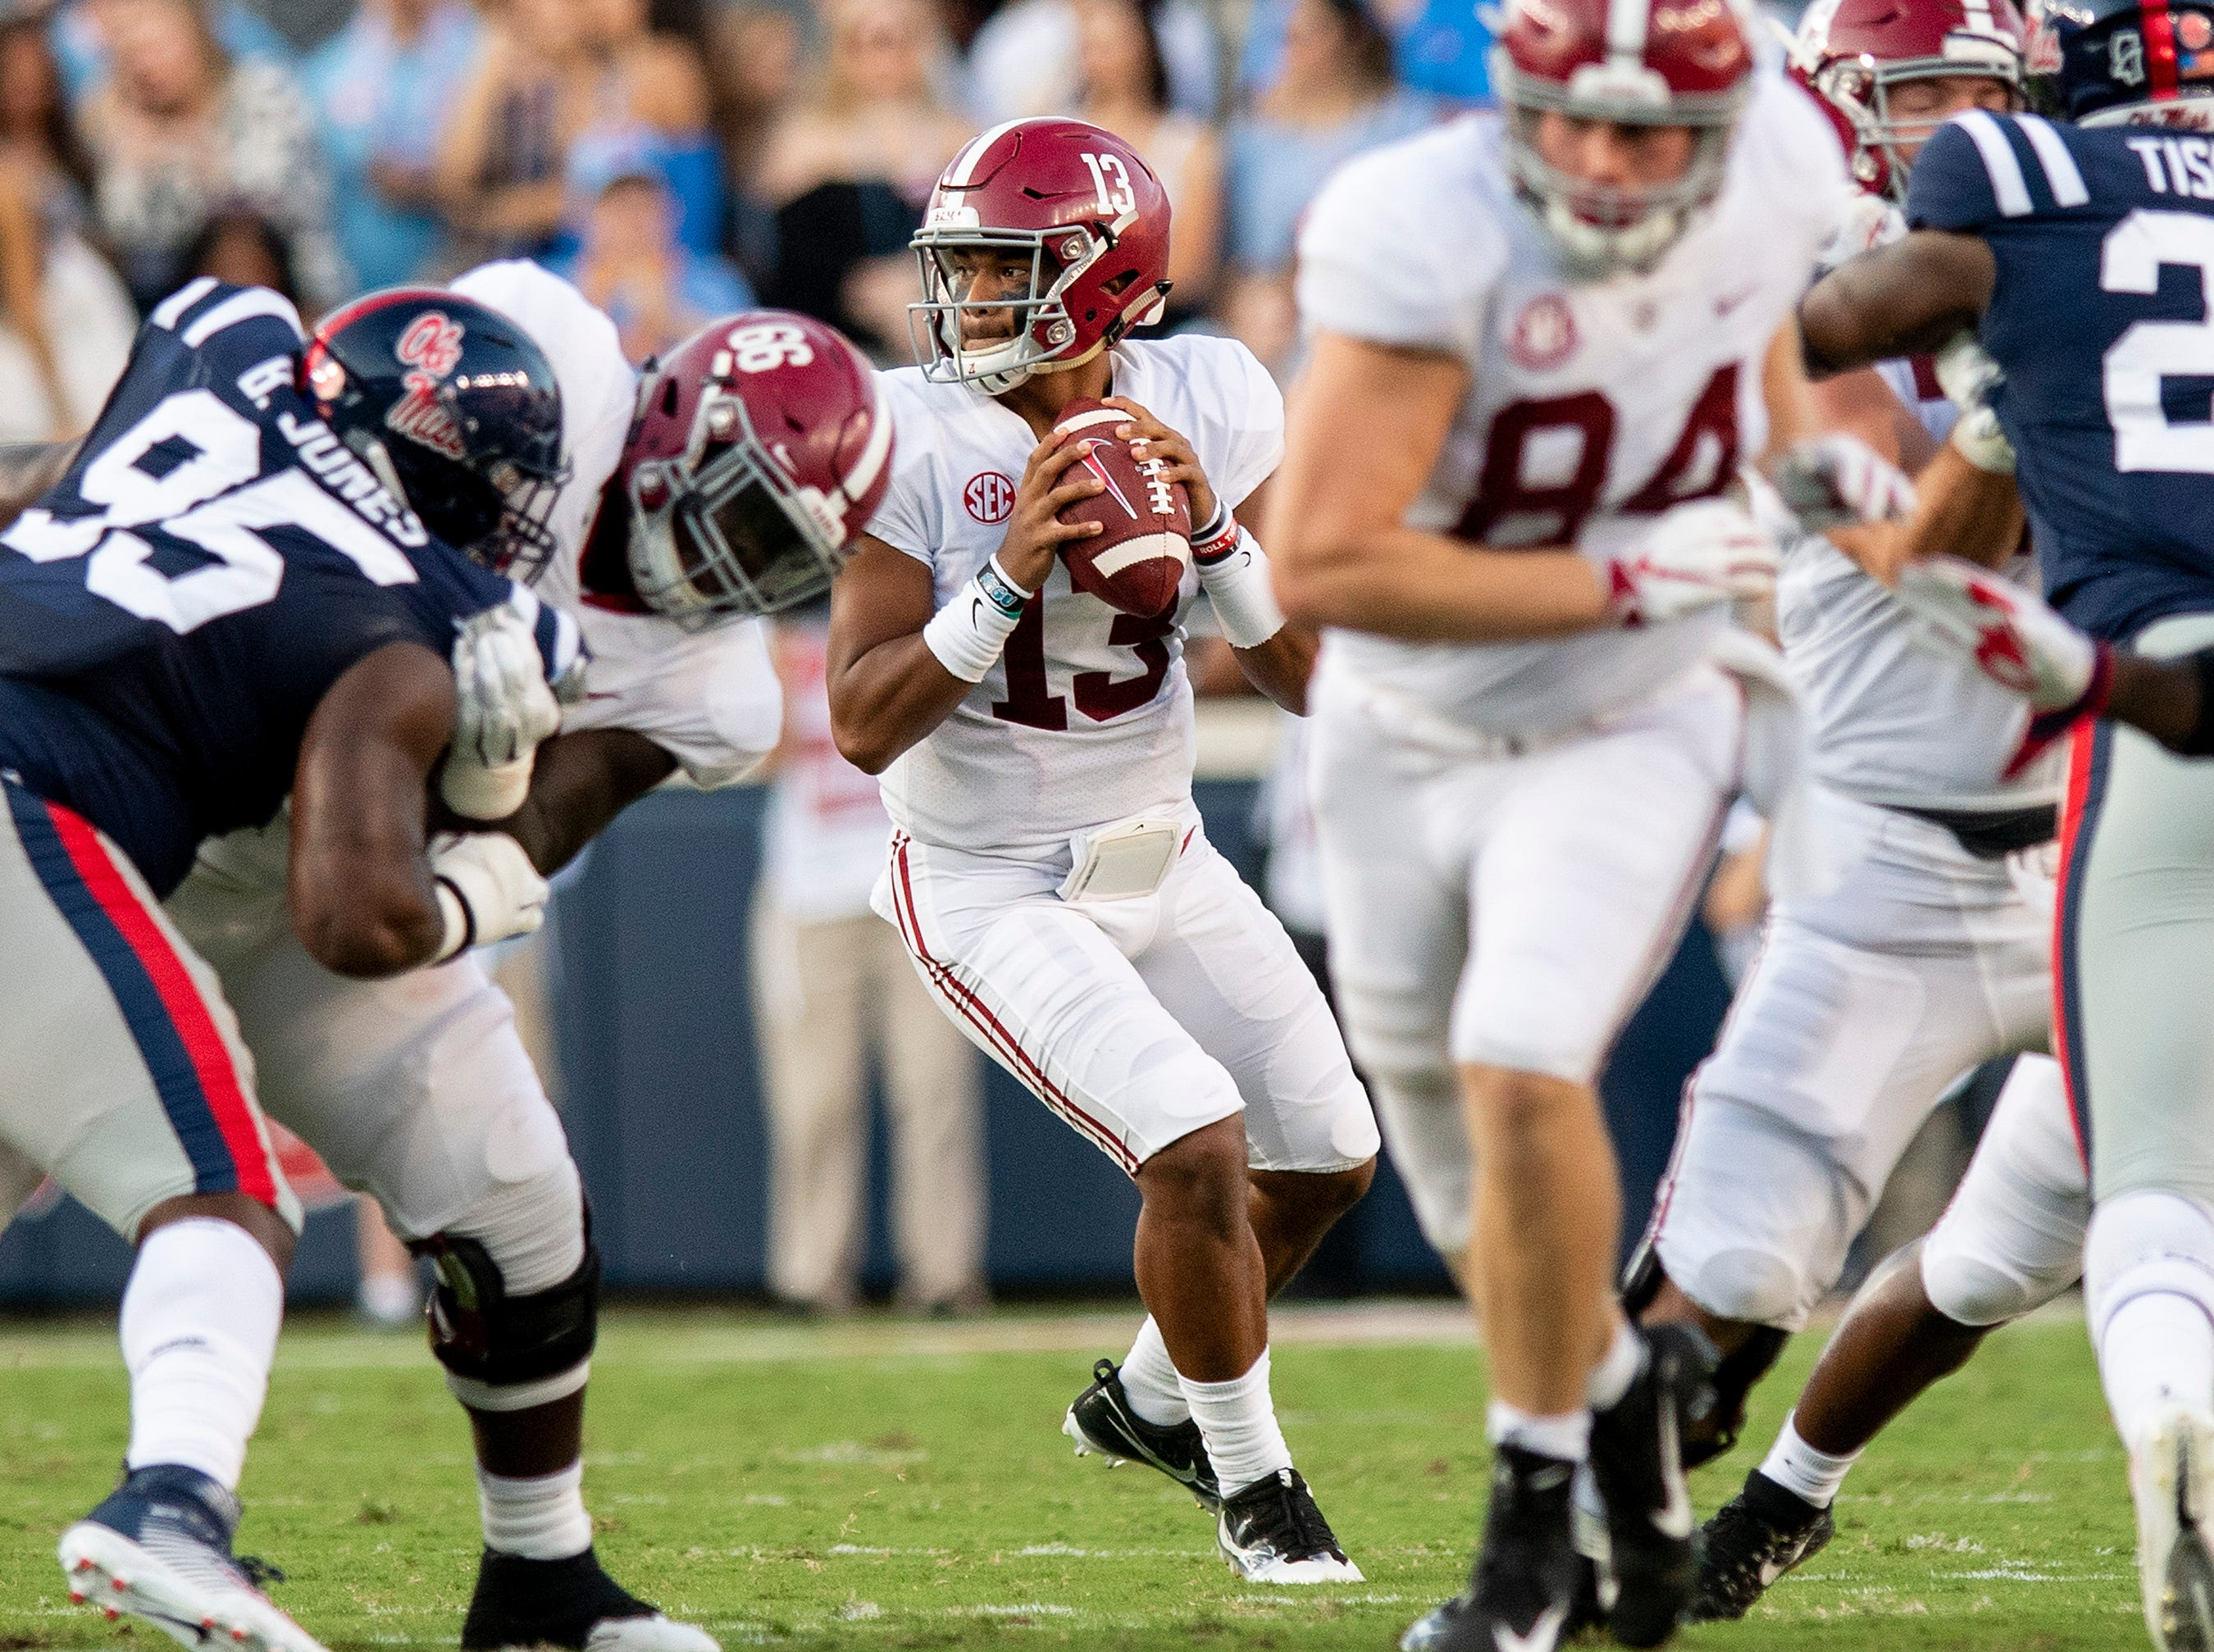 Alabama quarterback Tua Tagovailoa (13) looks to throw against Ole Miss In first half action in Oxford, Ms., on Saturday September 15, 2018.